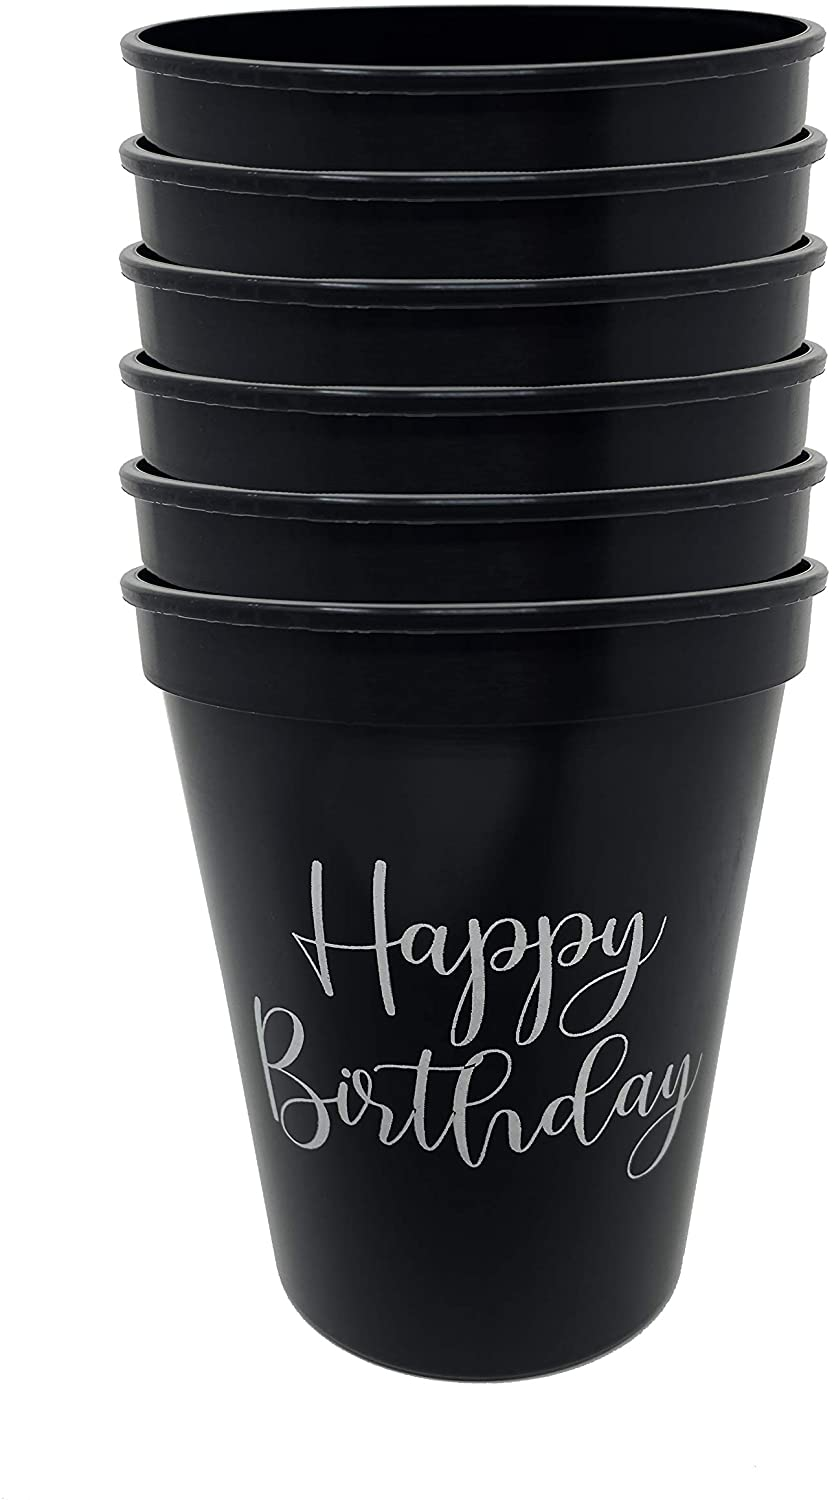 CUP2-6-HB06 Celebration Saying Party CUPs - 6 Happy Birthday (Black)